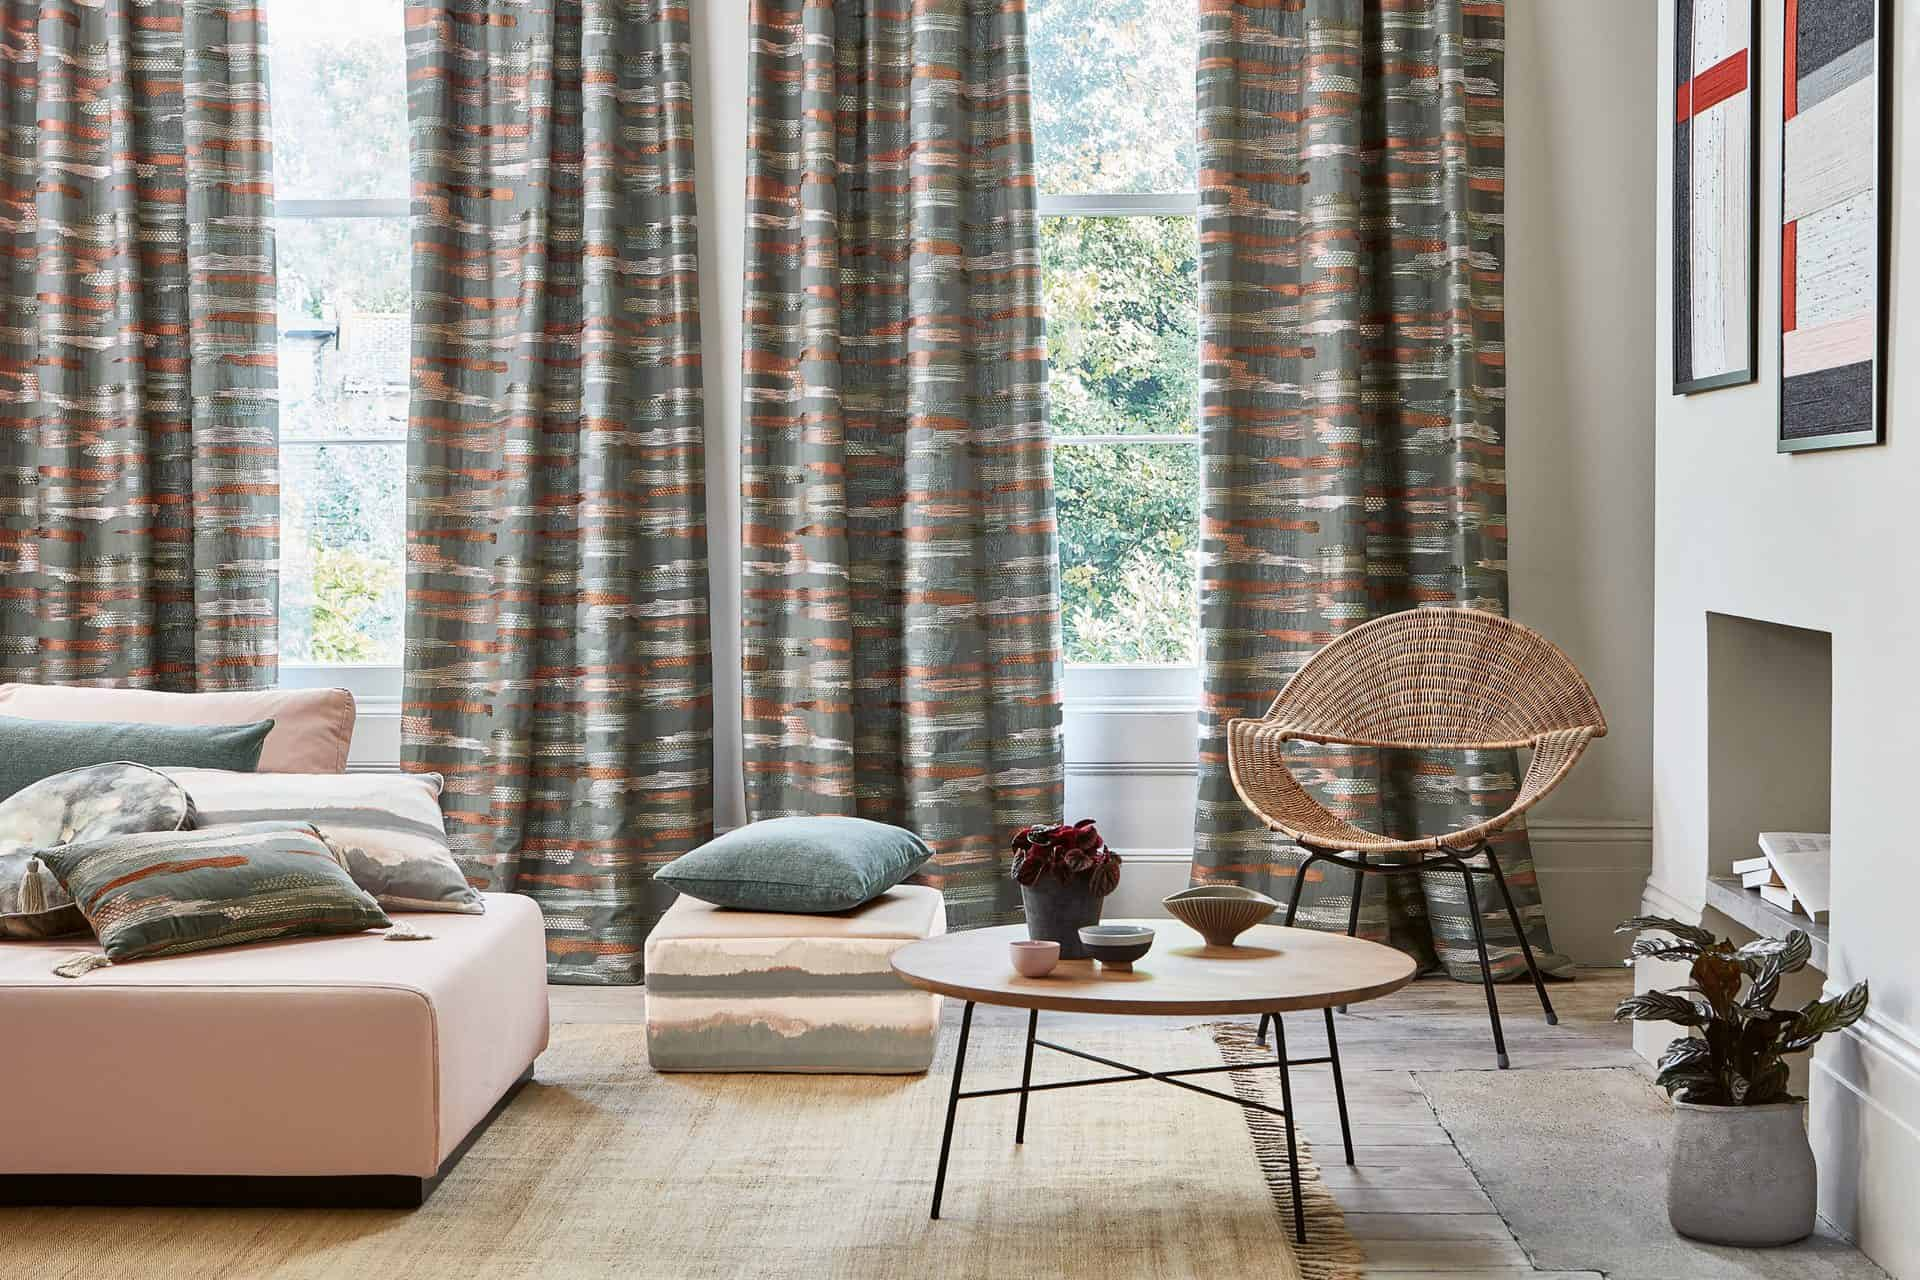 Benefits to Having Summer & Winter Curtains